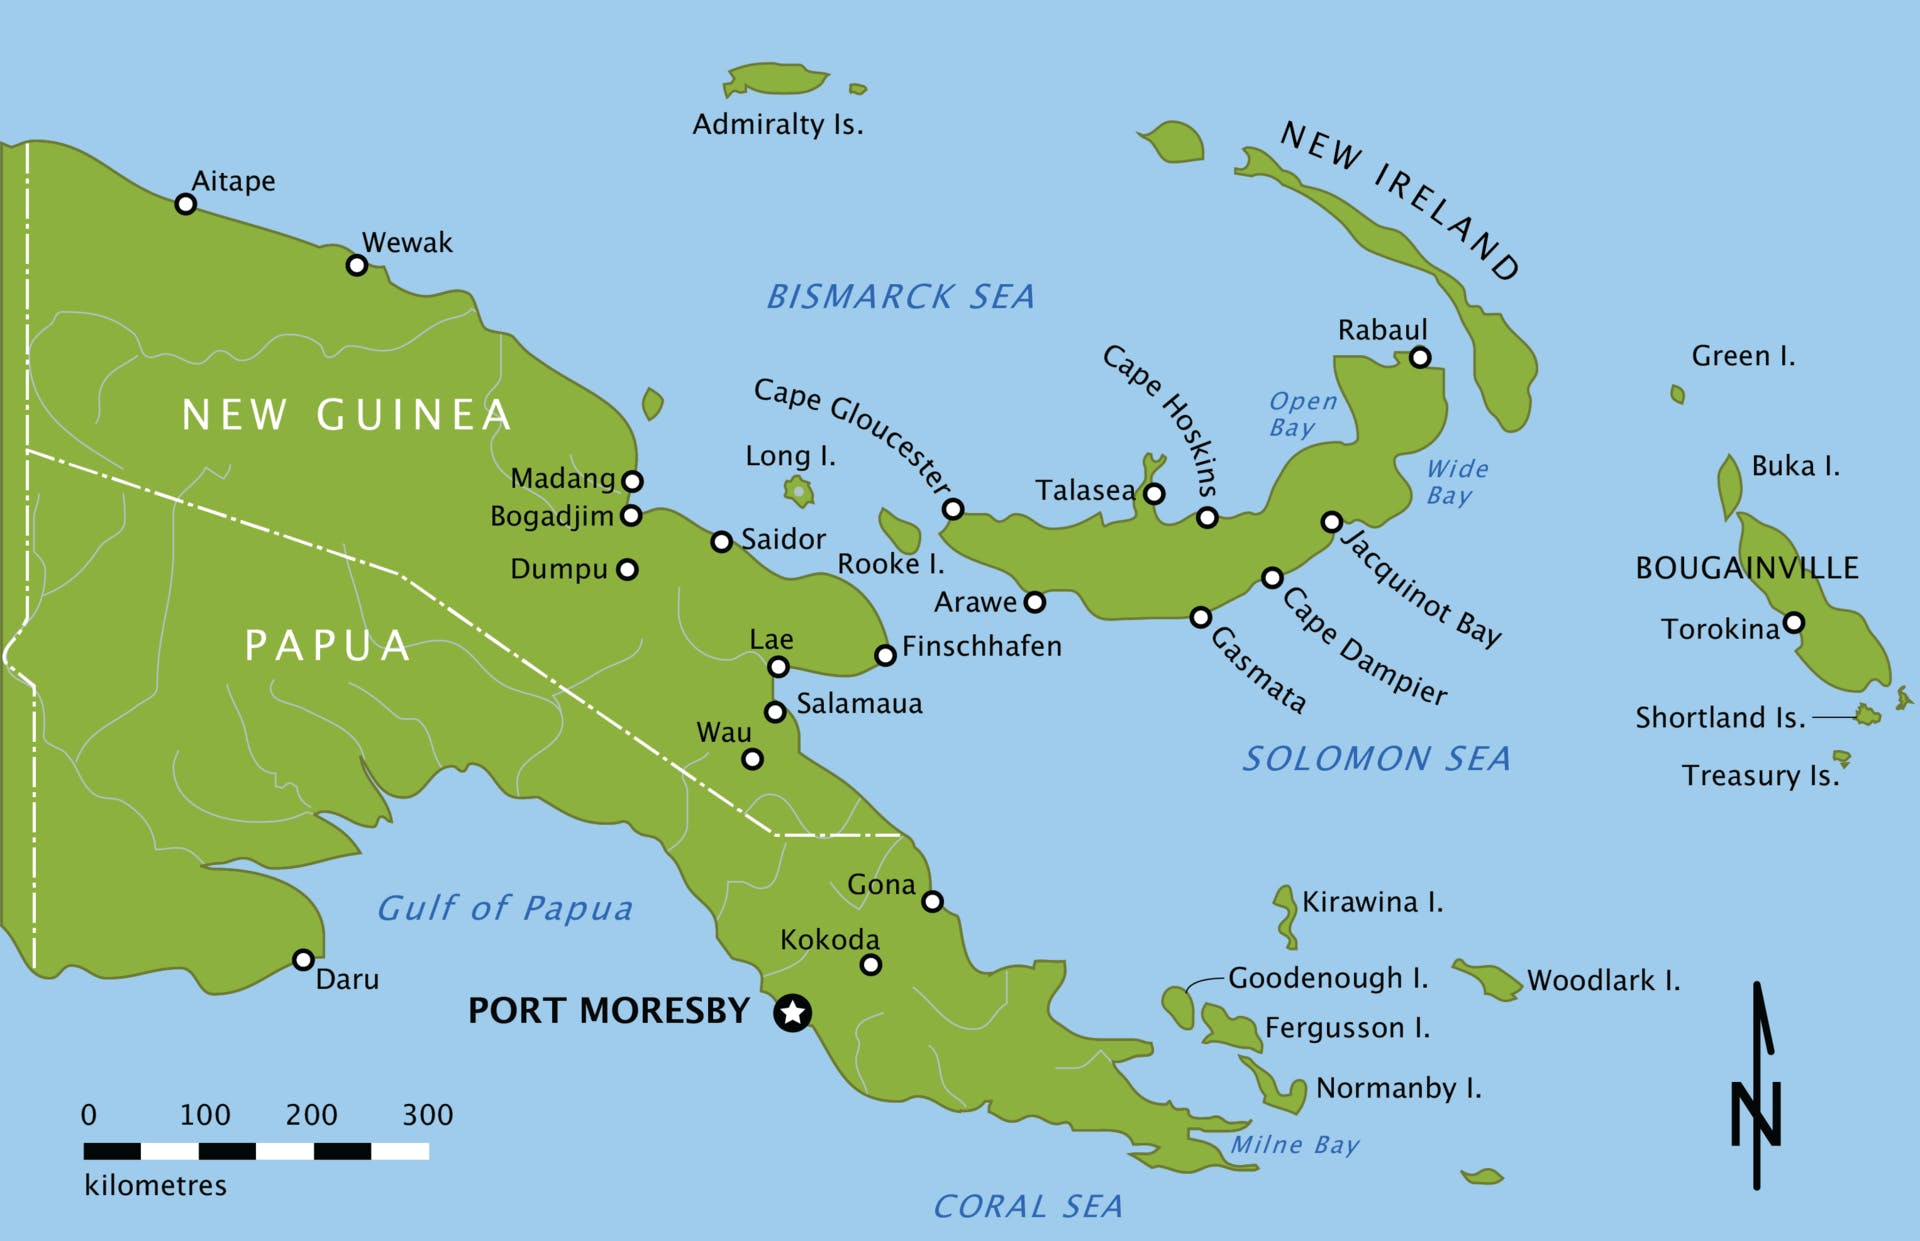 Episode 289-The Invasion of New Guinea